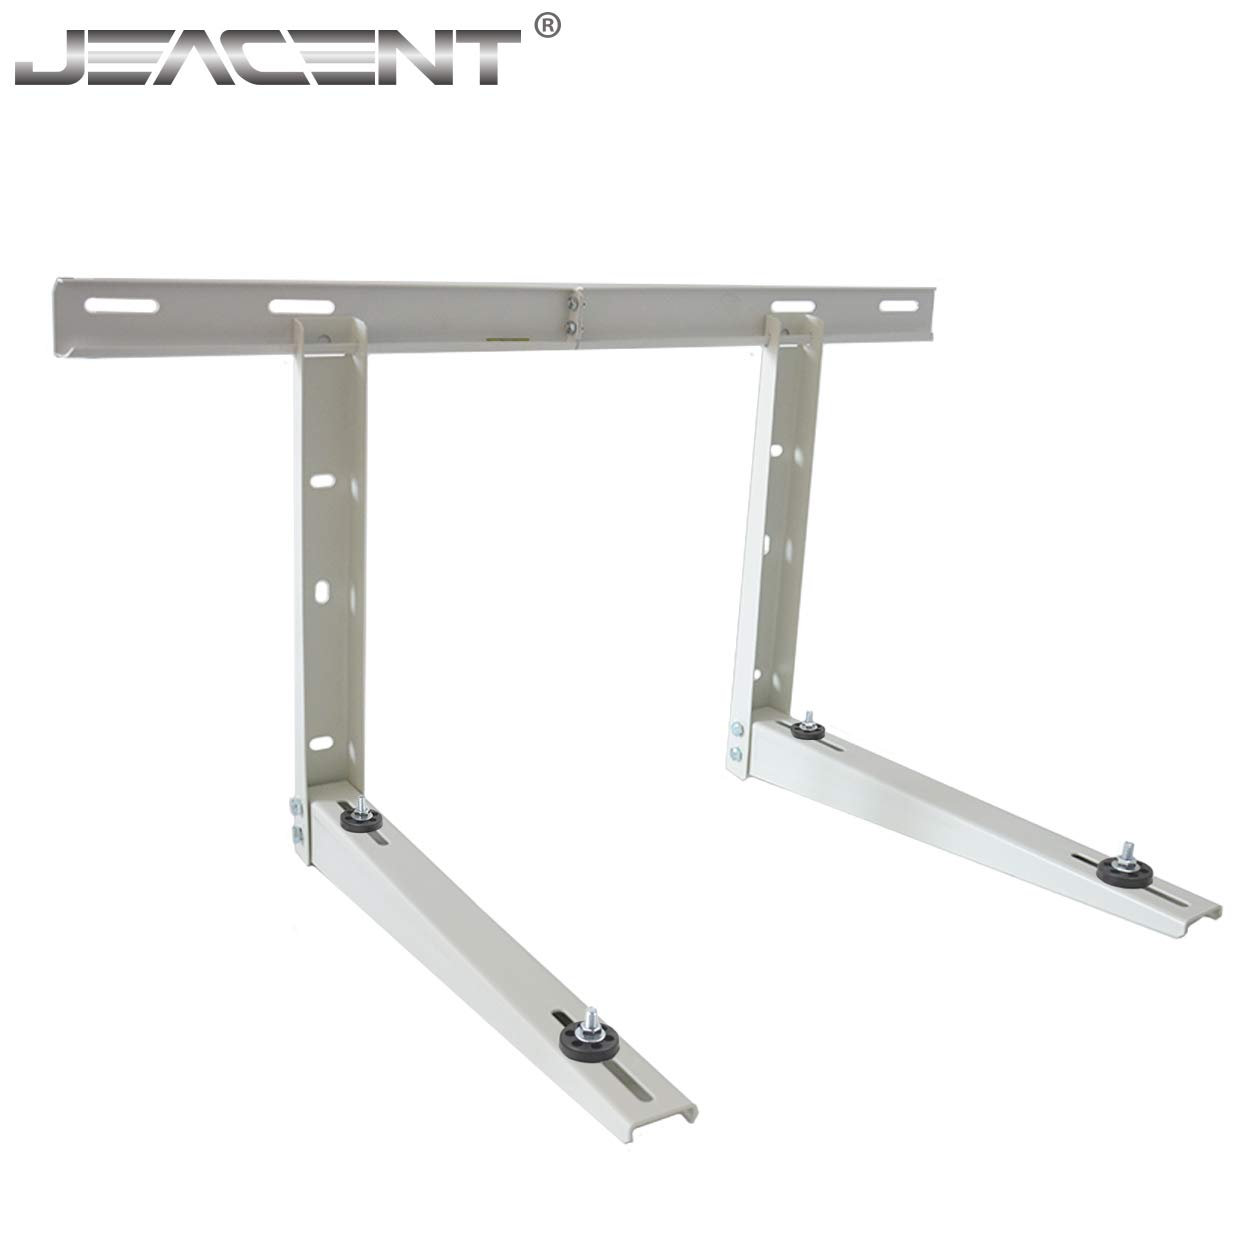 Universal Outdoor Mounting Bracket for Ductless Mini Split Air Conditioner, Condensing Heat Pump Systems, 9000-36000 Btu Condenser Jeacent Inovations